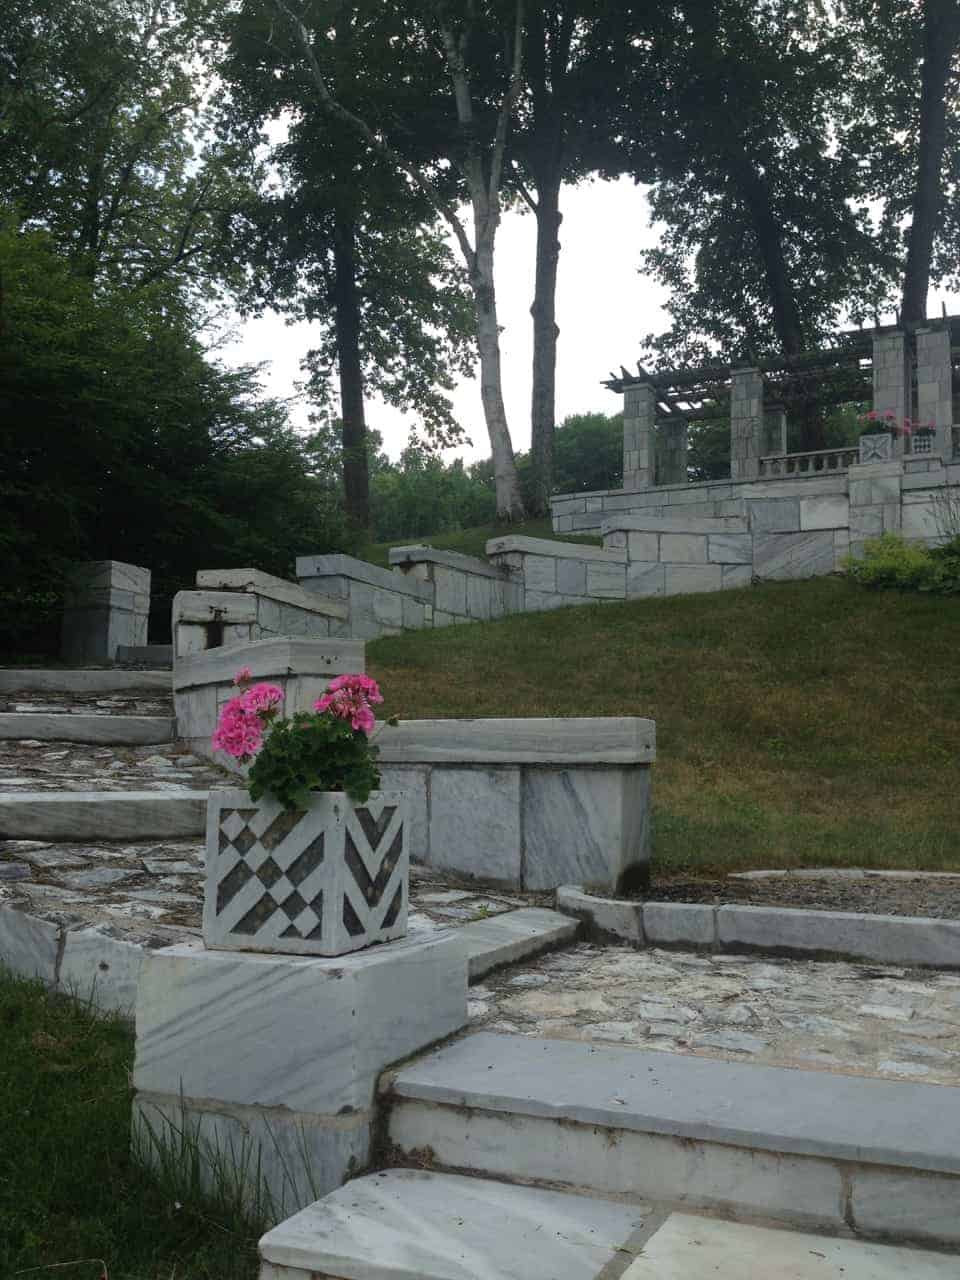 Marble steps and planters lead up the hill to a collonade. Photo by Kate Abbott